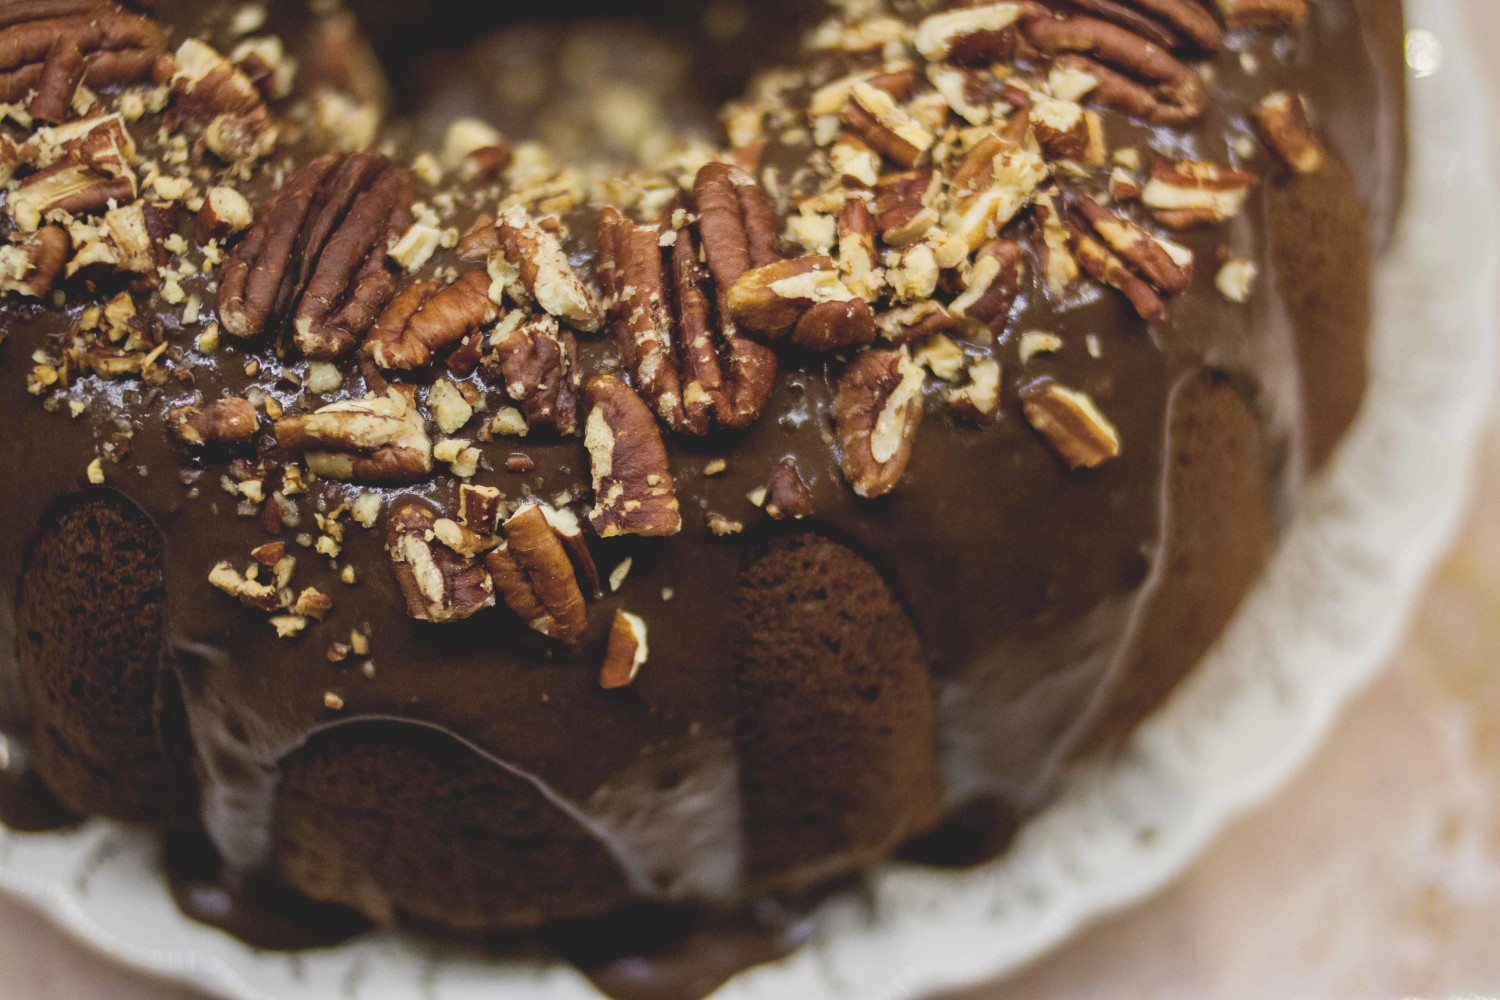 Whole grain pumpkin spice cake with dark chocolate chunks + toasted pecans topped with dark chocolate & coconut ganache